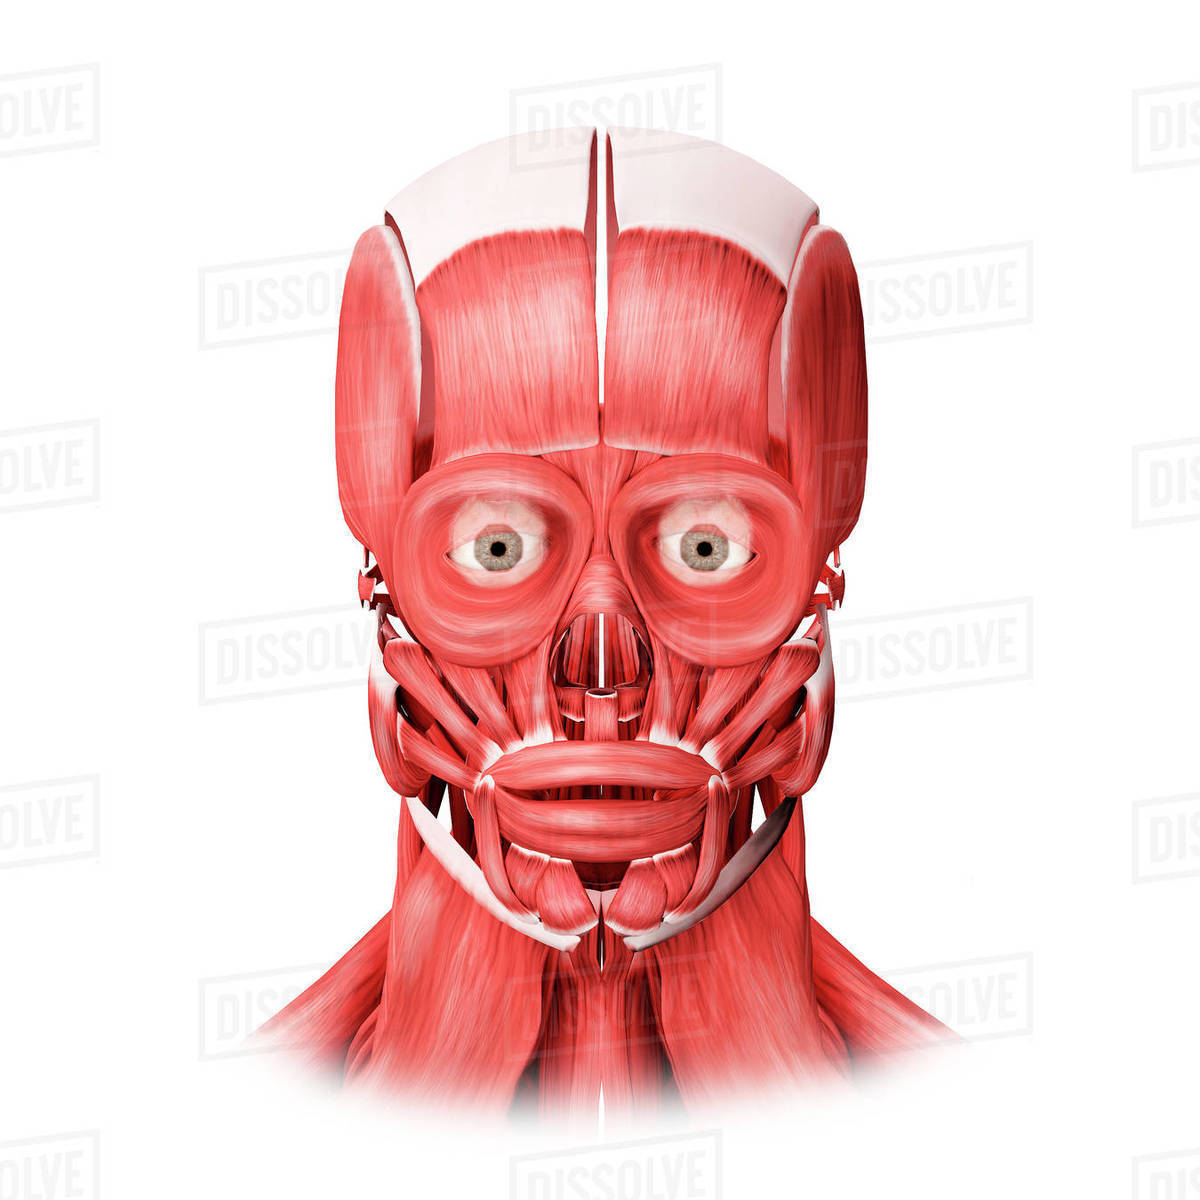 Medical Illustration Of Male Facial Muscles Front View Stock